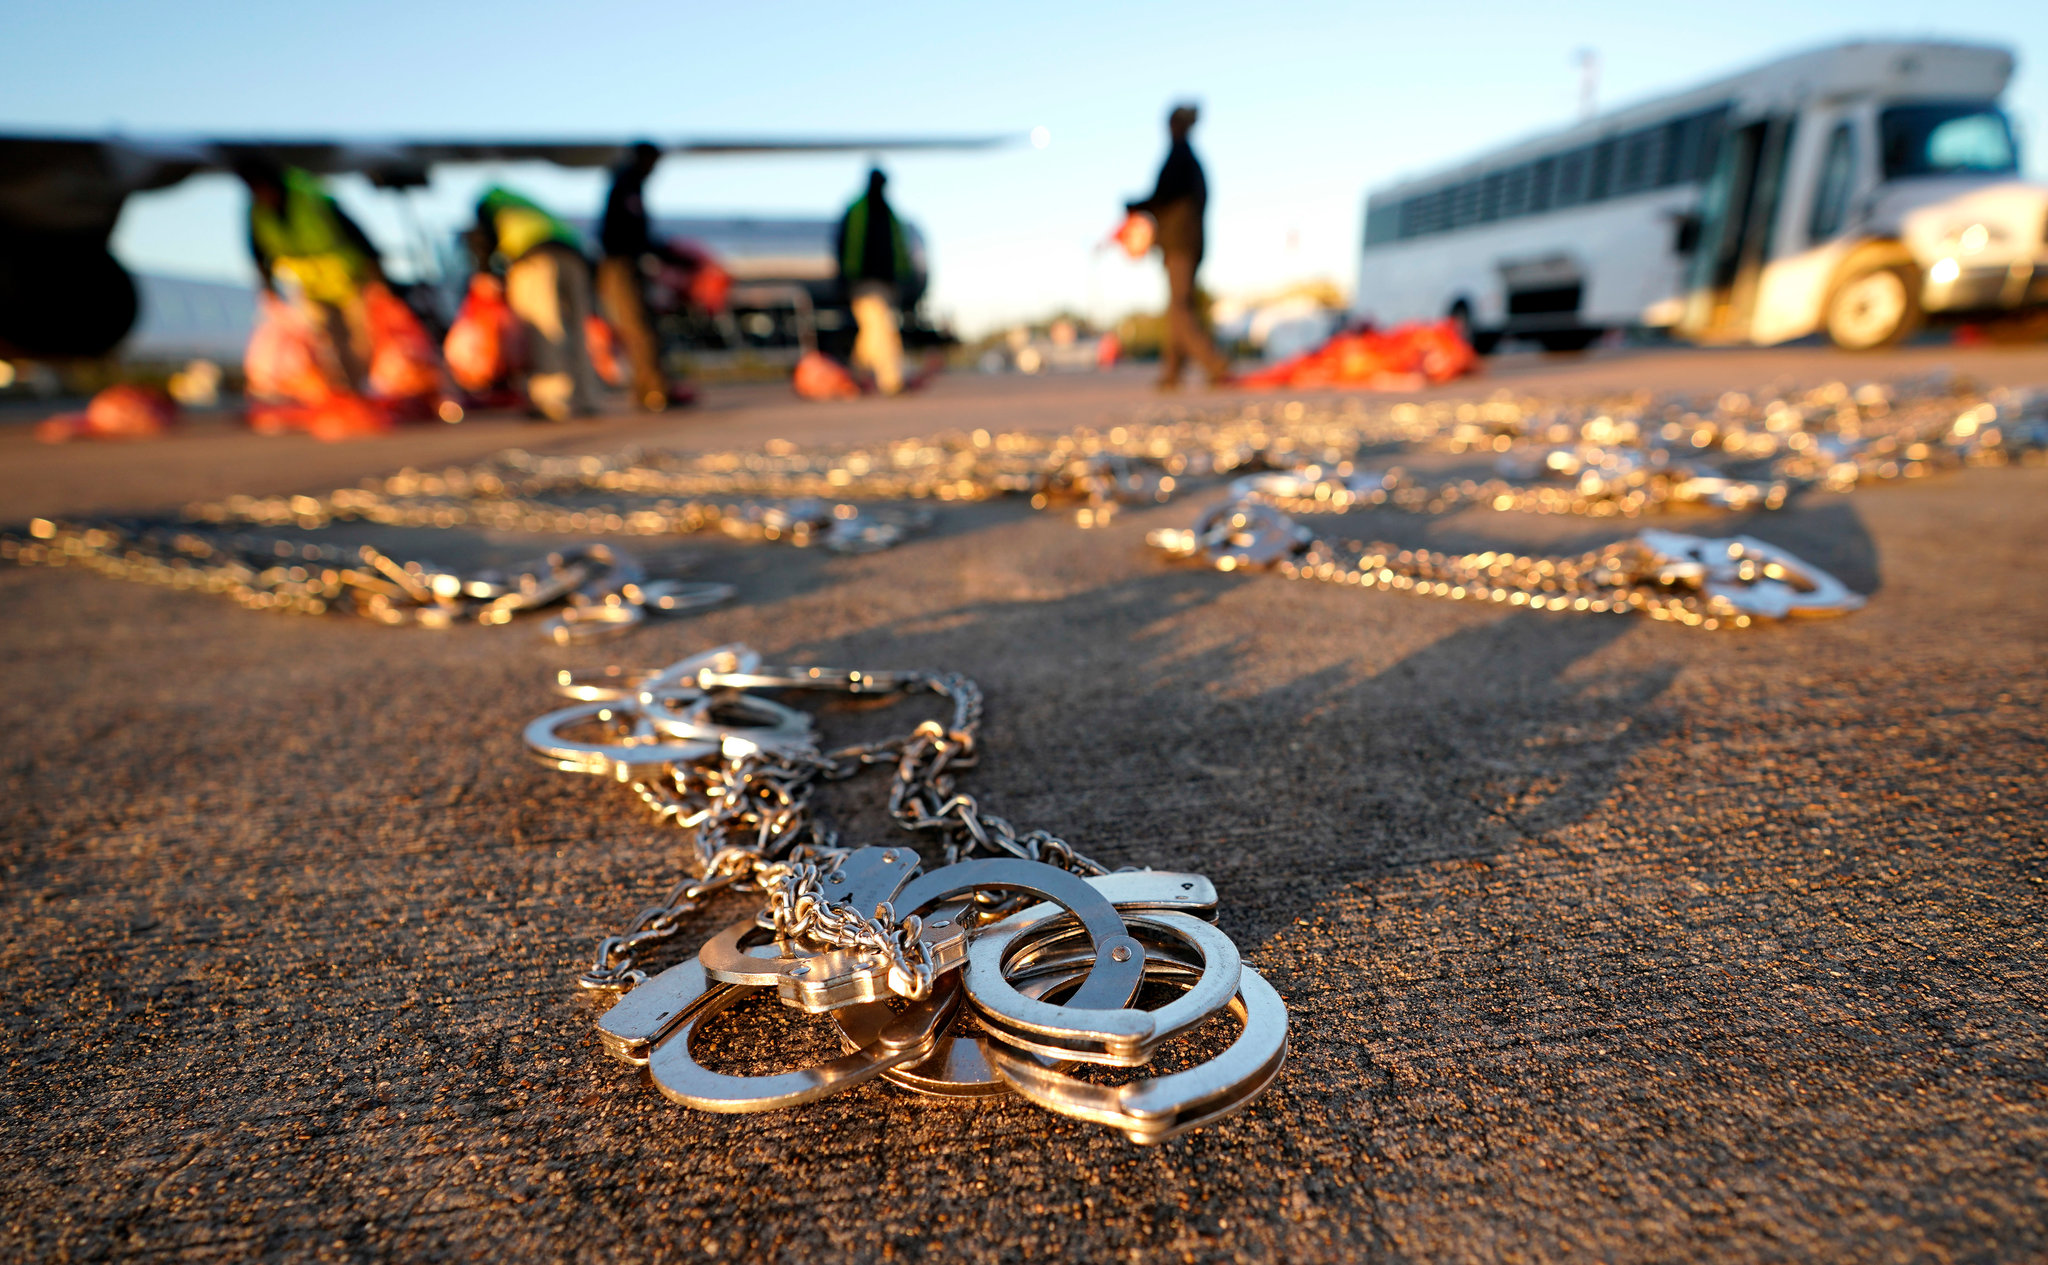 Handcuffs left on the tarmac as immigrants were loaded onto a plane for a deportation flight from Texas to El Salvador last year.